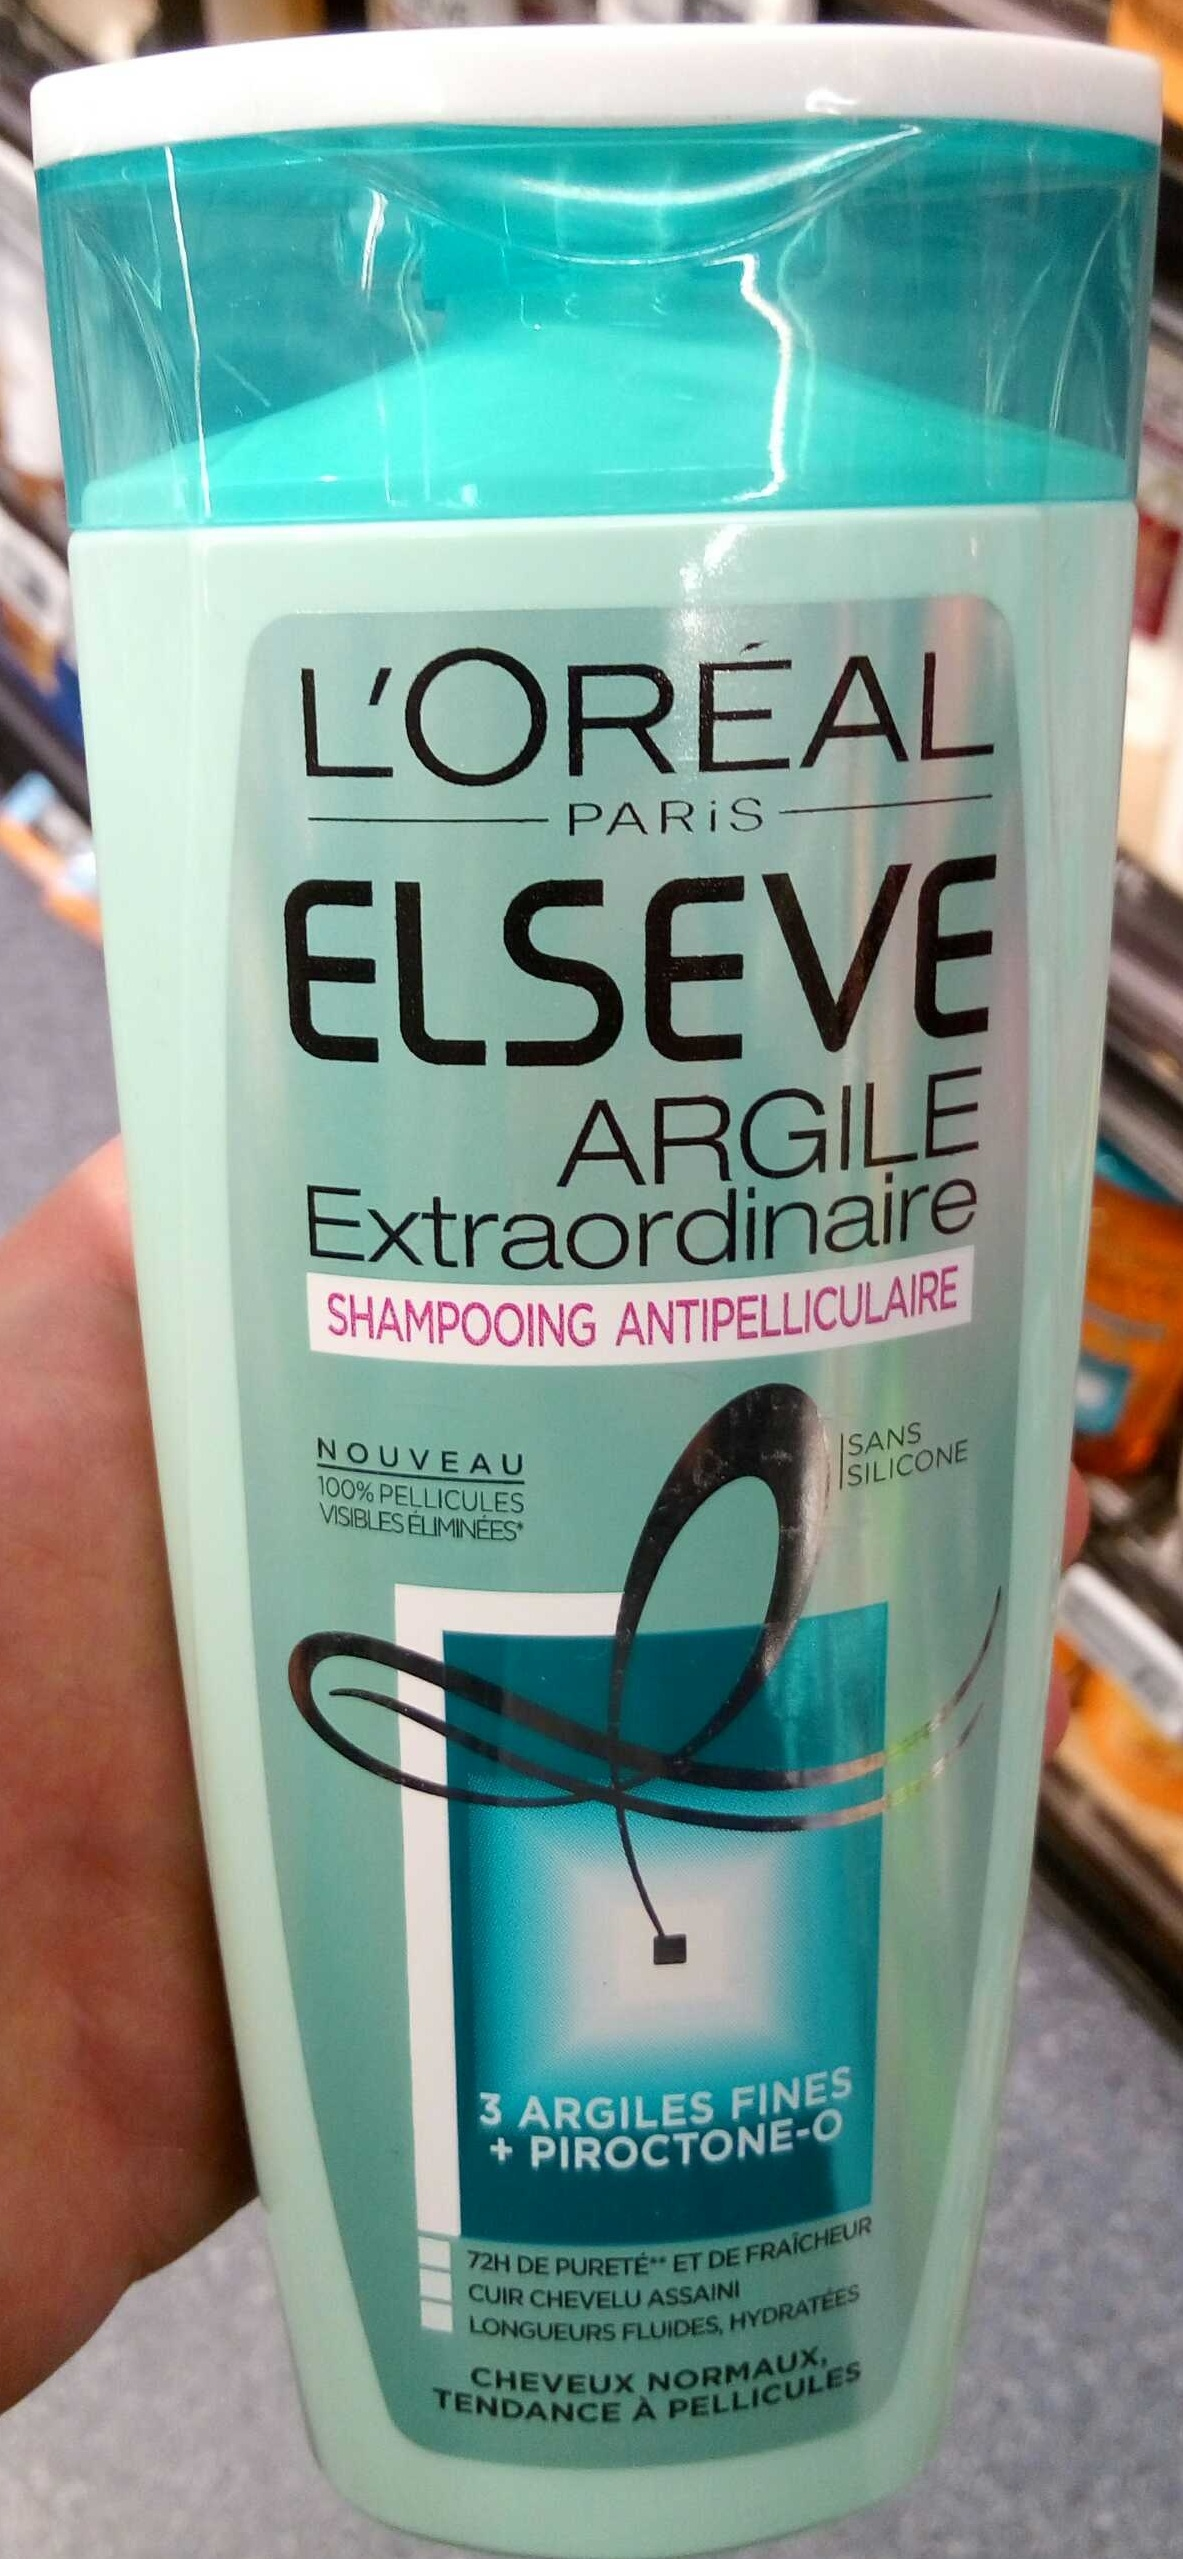 Elseve Argile Extraordinaire Shampooing antipelliculaire - Product